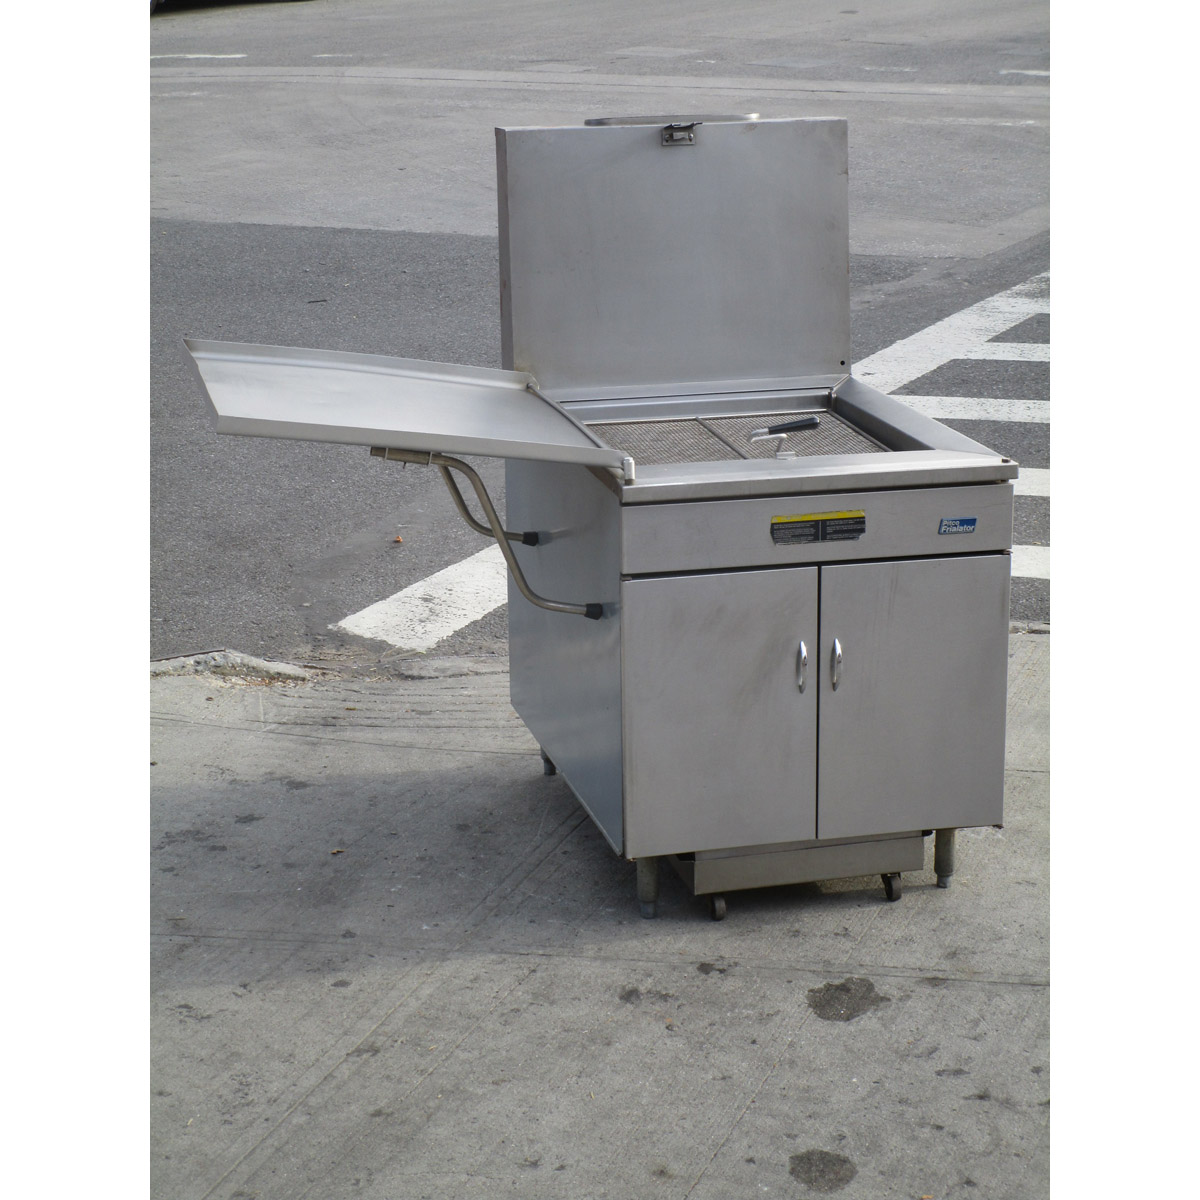 Longstanding Pitco Gas Donut Fryer Filter Very Good Condition Product Photo